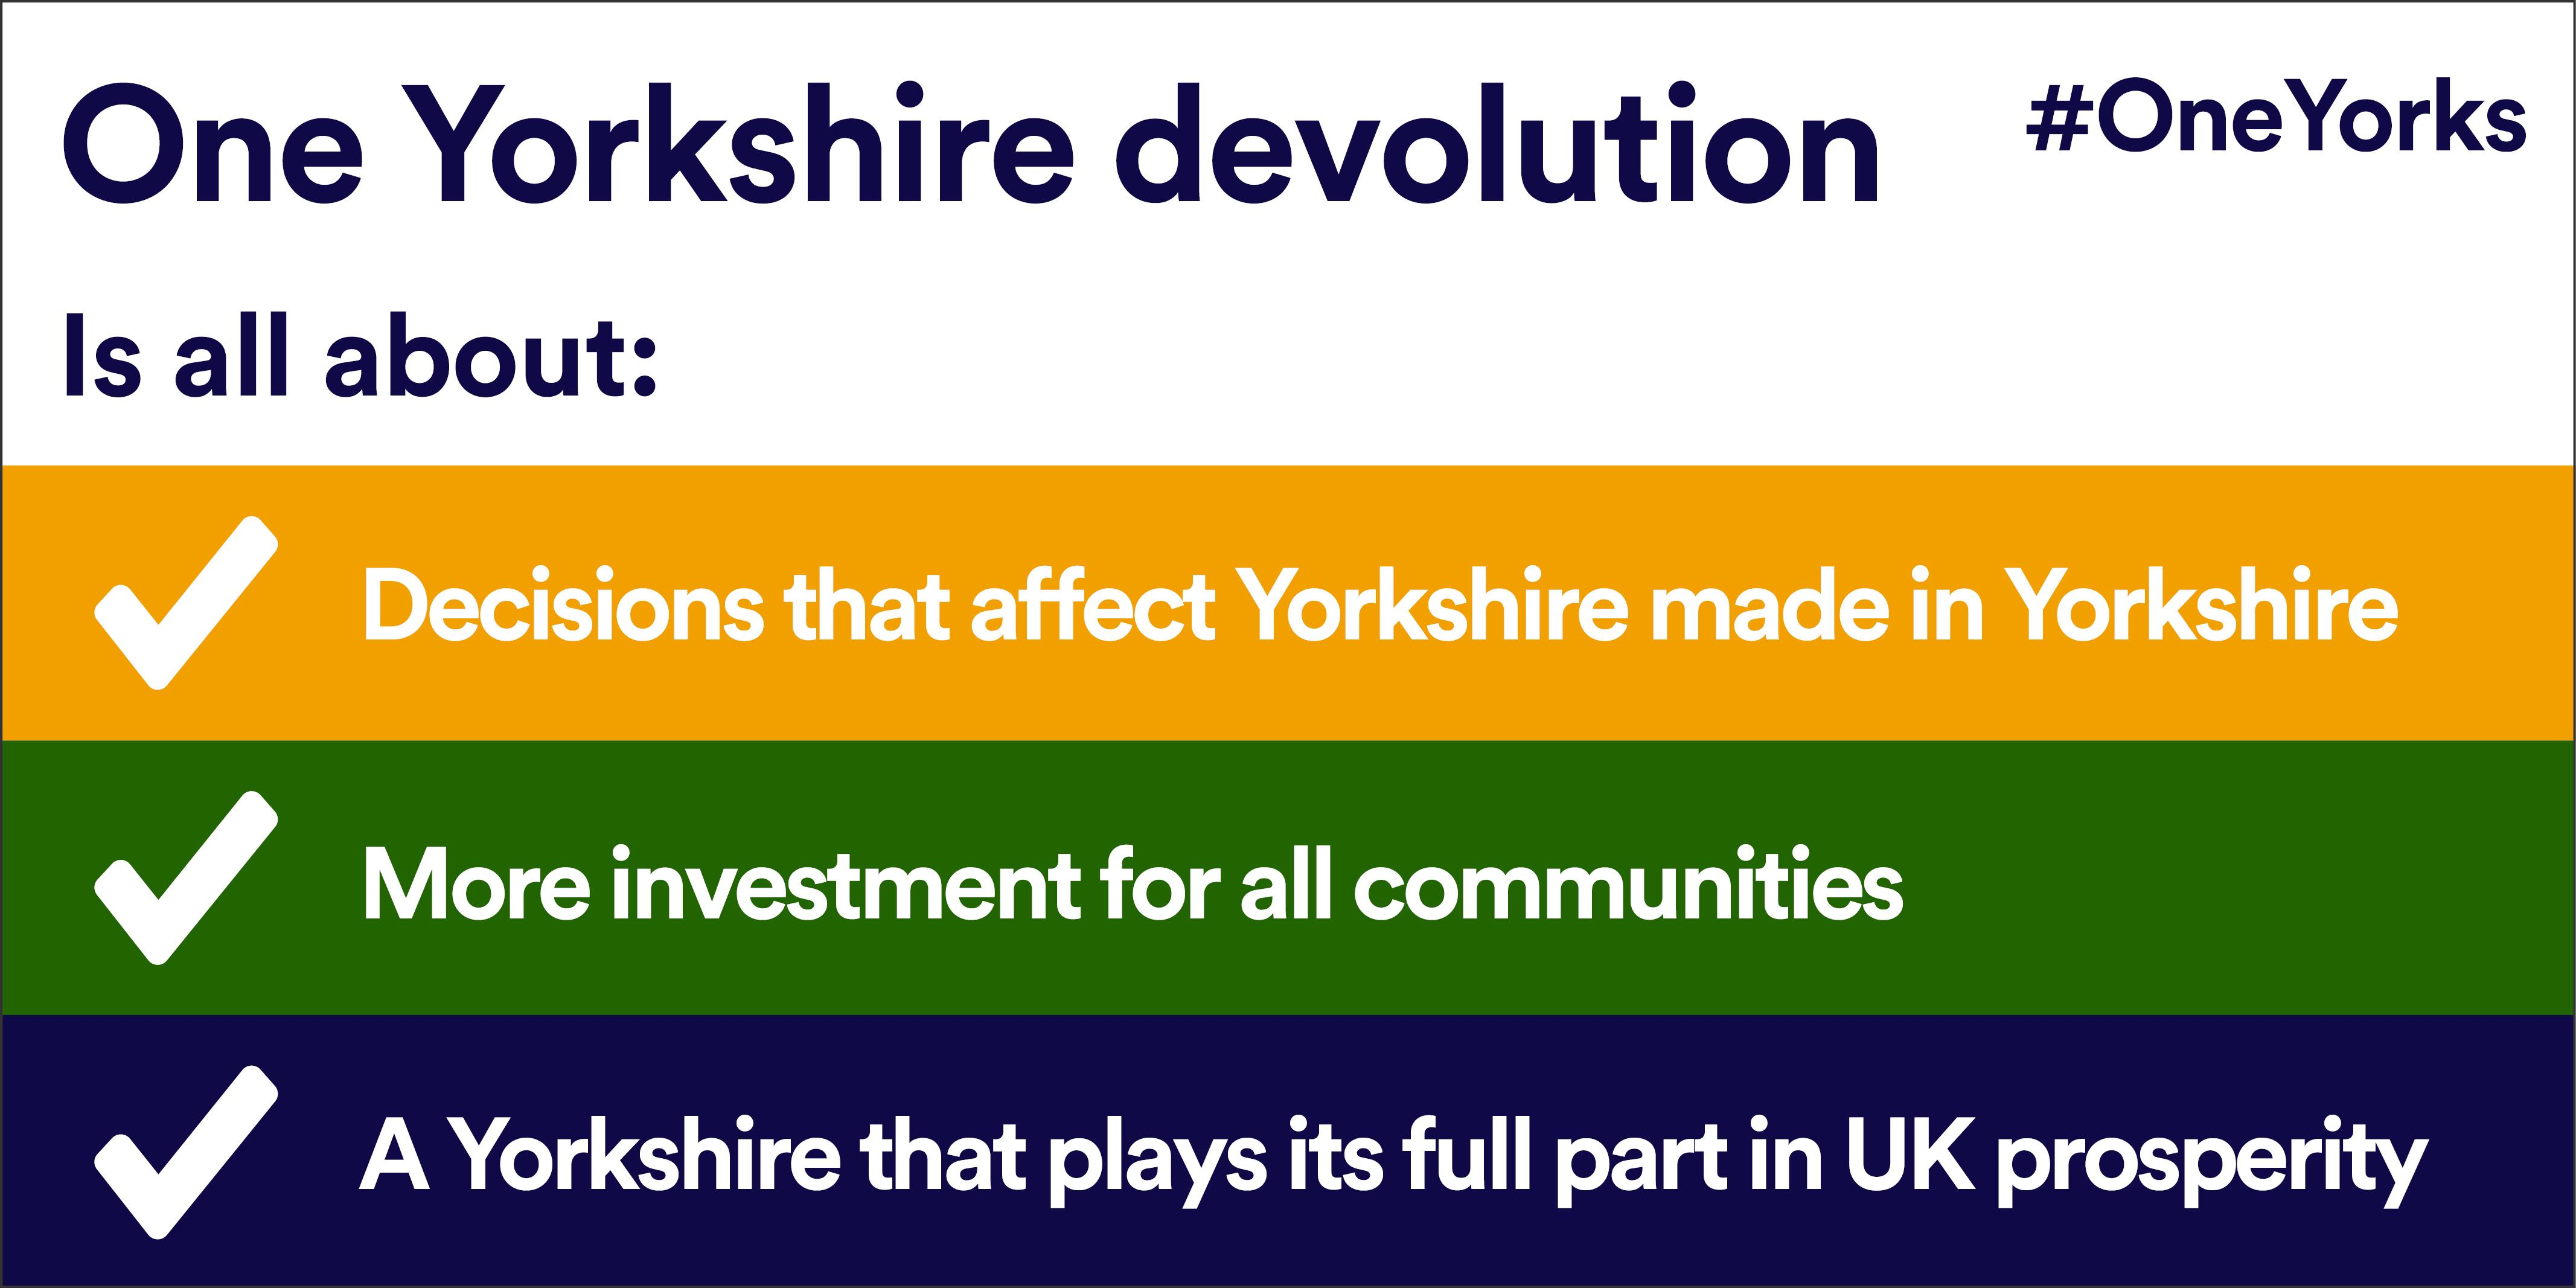 Infographic about One Yorkshire devolution